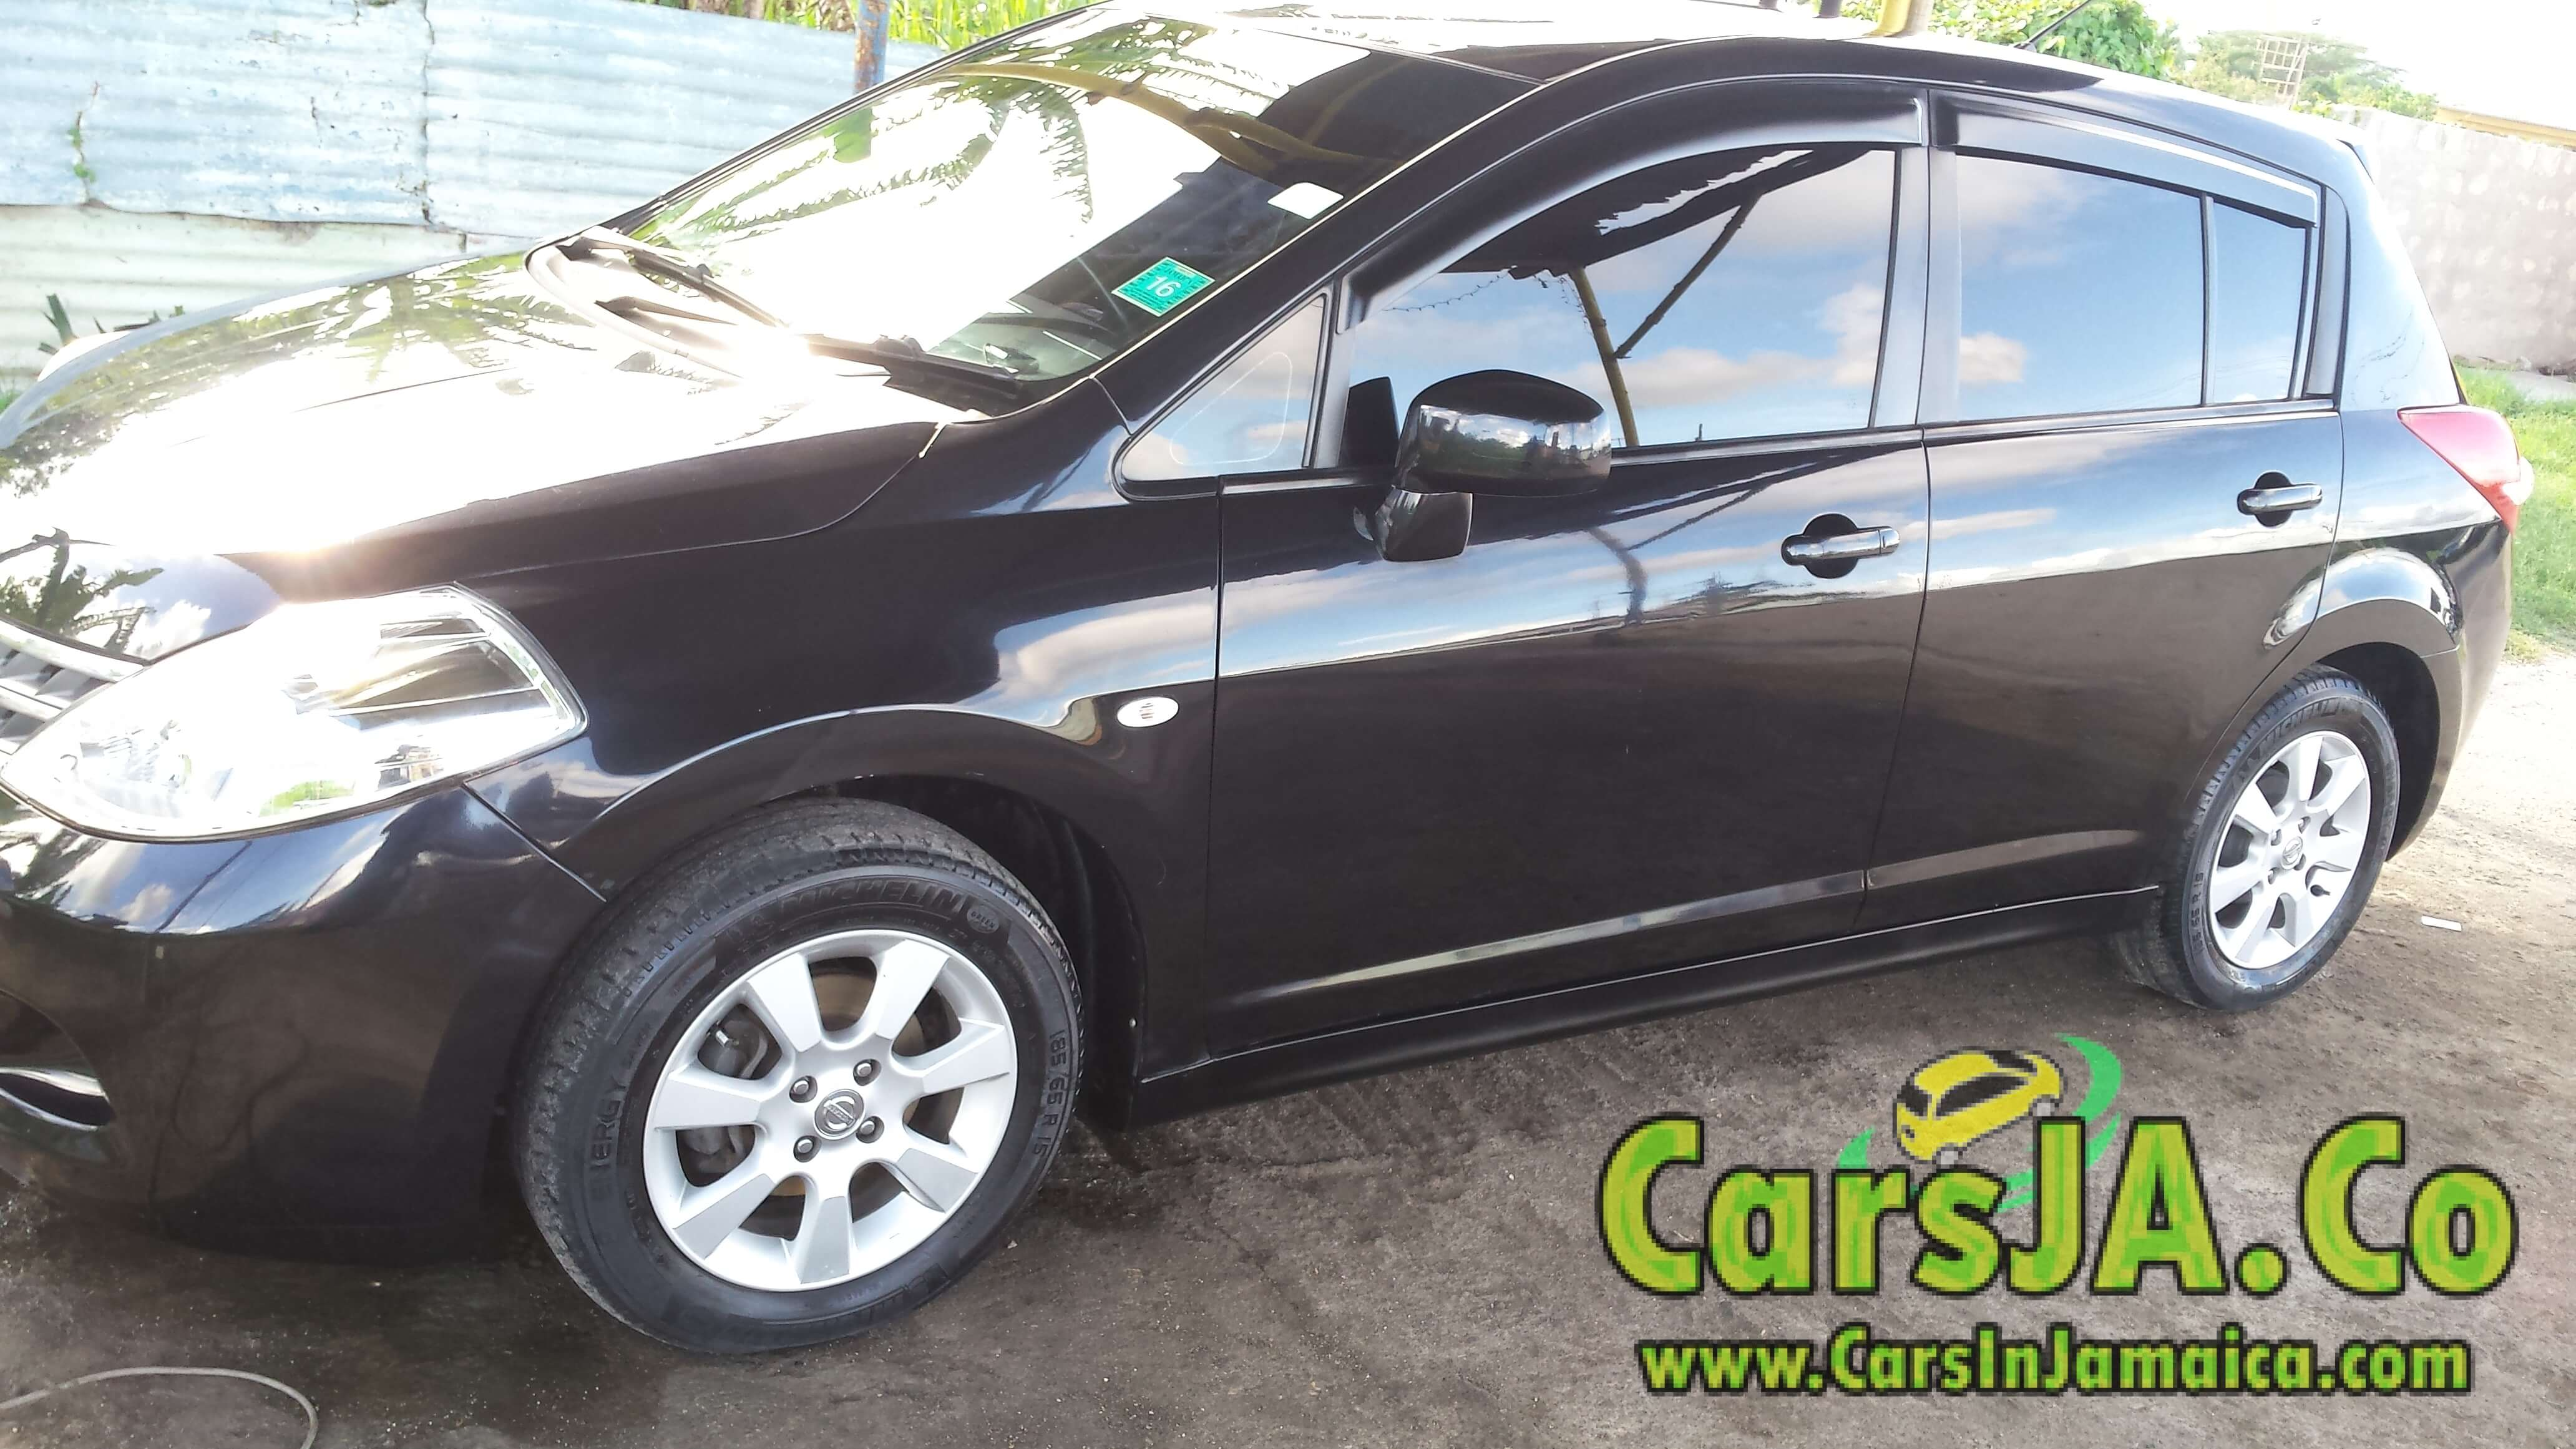 Nissan Tiida Hatchback09 For Sale In Jamaica